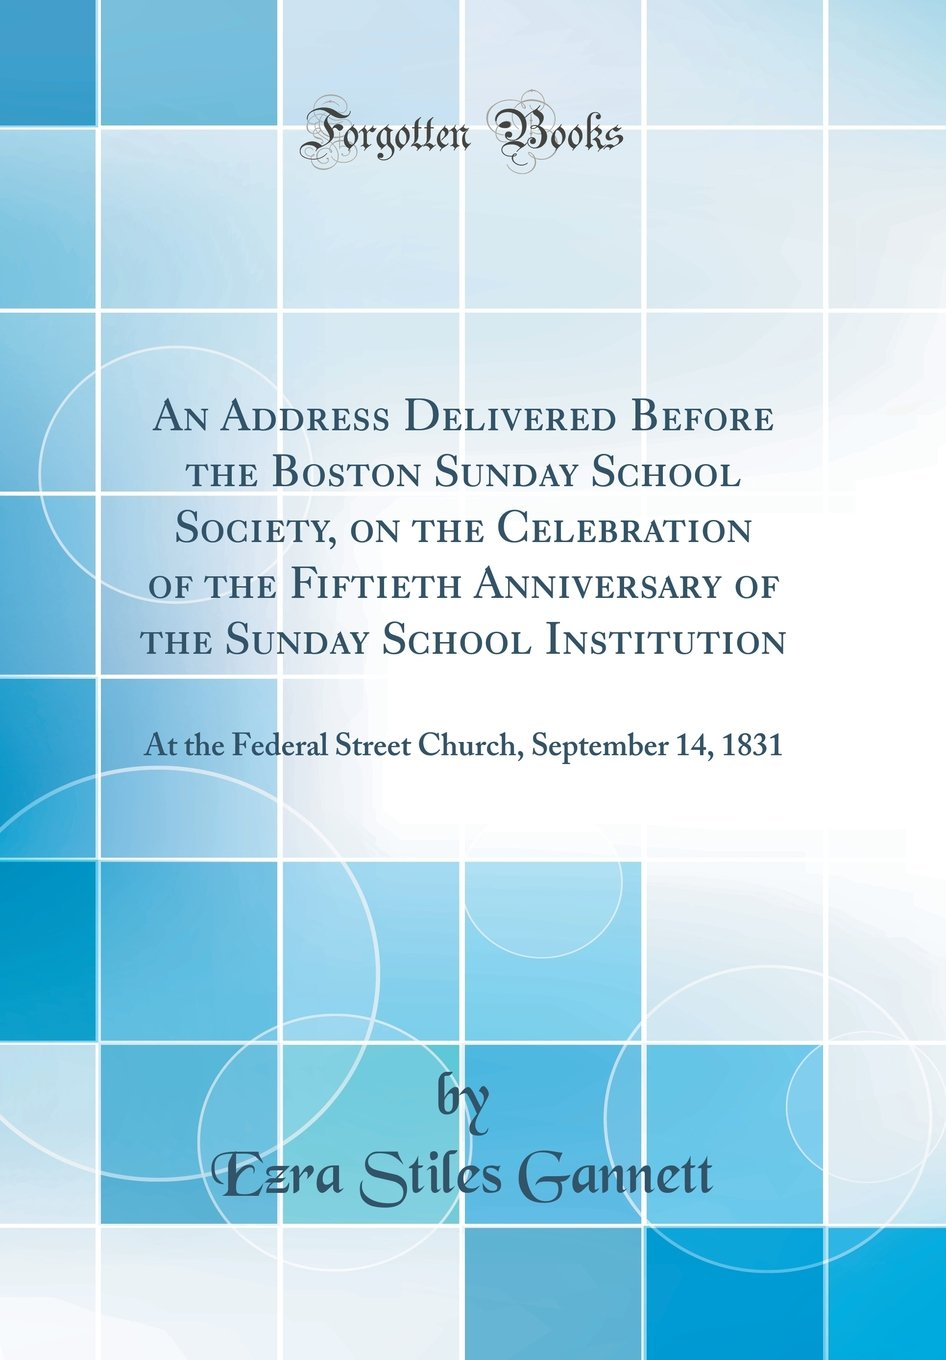 An Address Delivered Before the Boston Sunday School Society, on the Celebration of the Fiftieth Anniversary of the Sunday School Institution: At the ... Church, September 14, 1831 (Classic Reprint) pdf epub